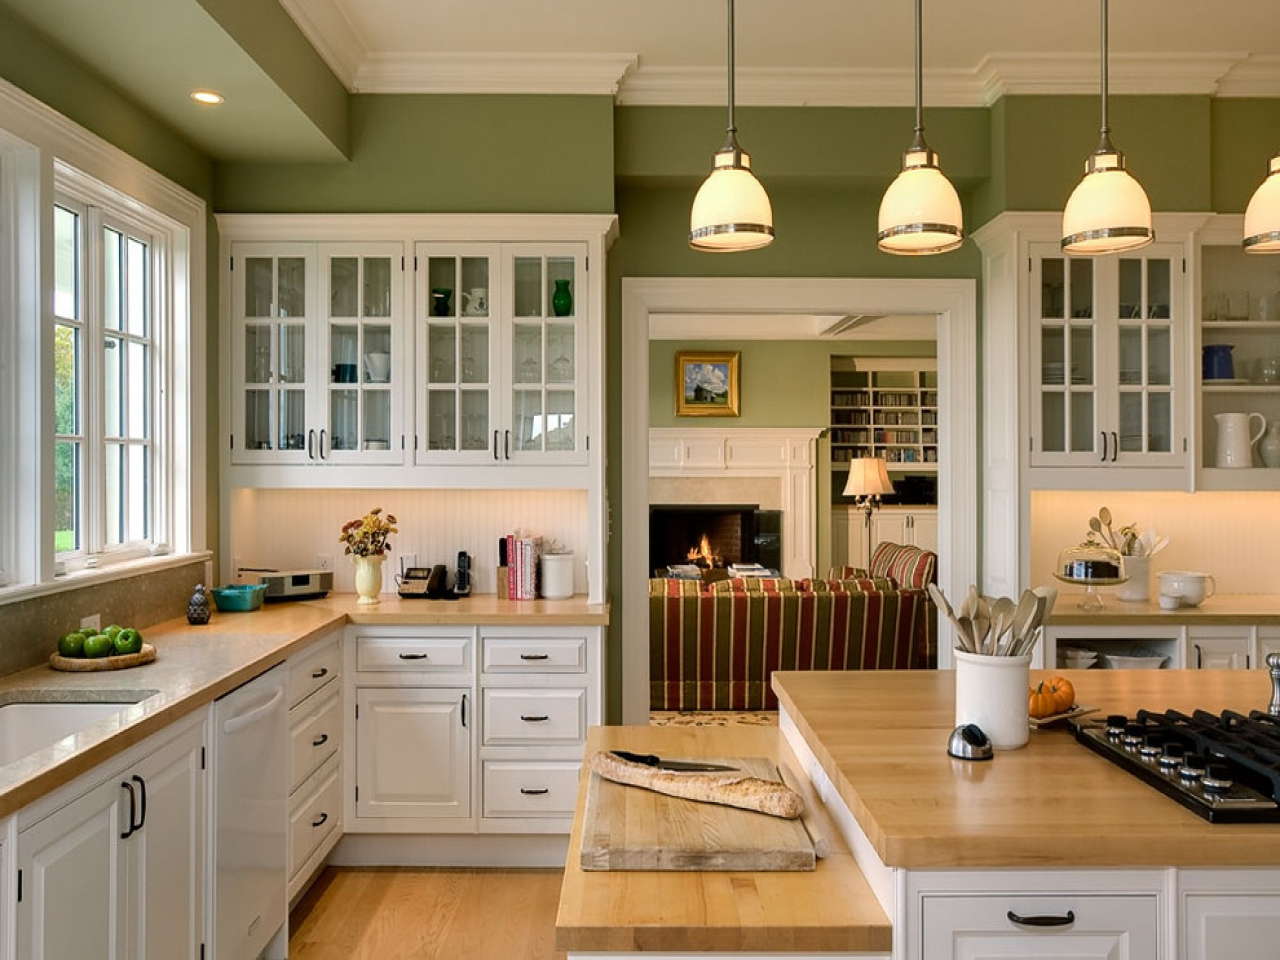 Country style kitchen design - Country style kitchen cabinets ...